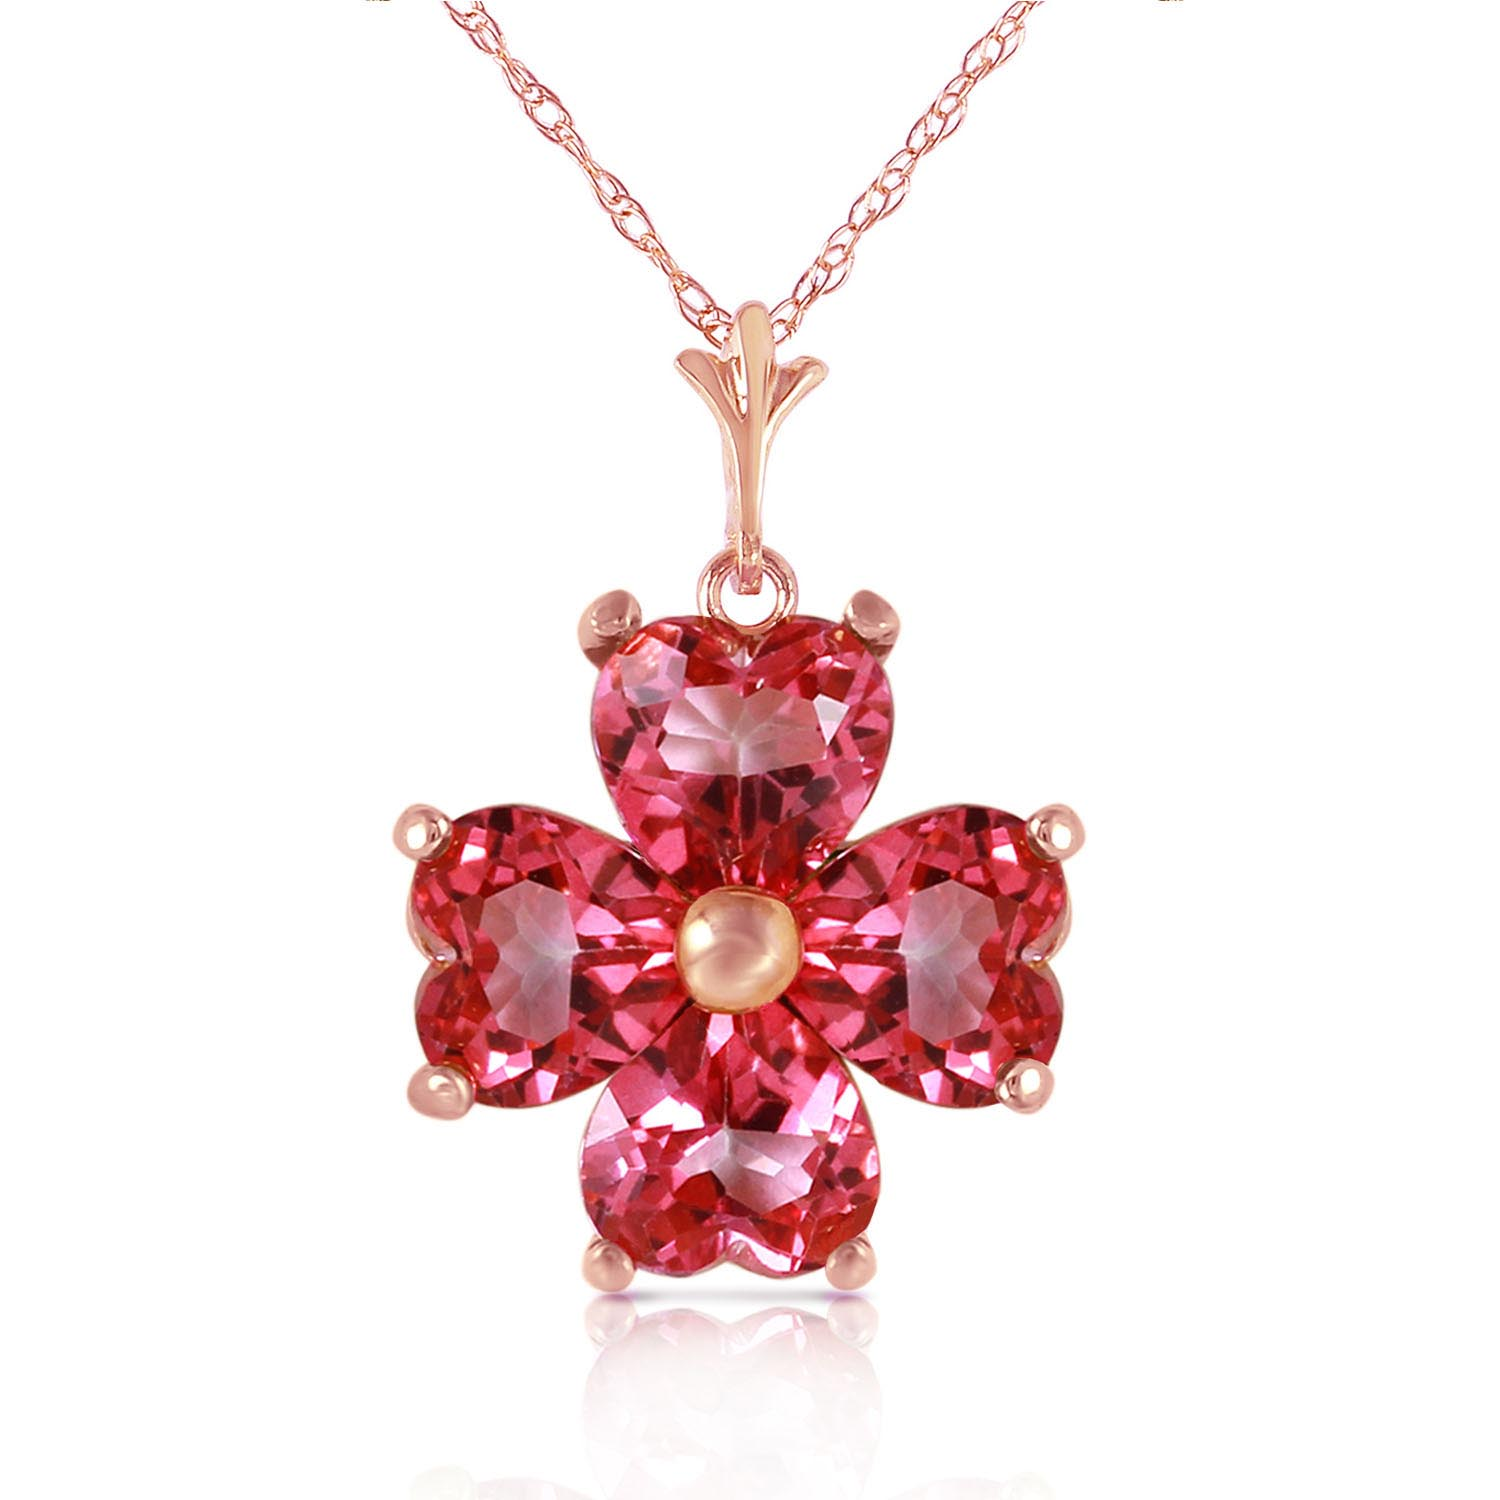 Bargain Pink Topaz Four Leaf Clover Heart Pendant Necklace 3.8ctw in 9ct Rose Gold Stockists